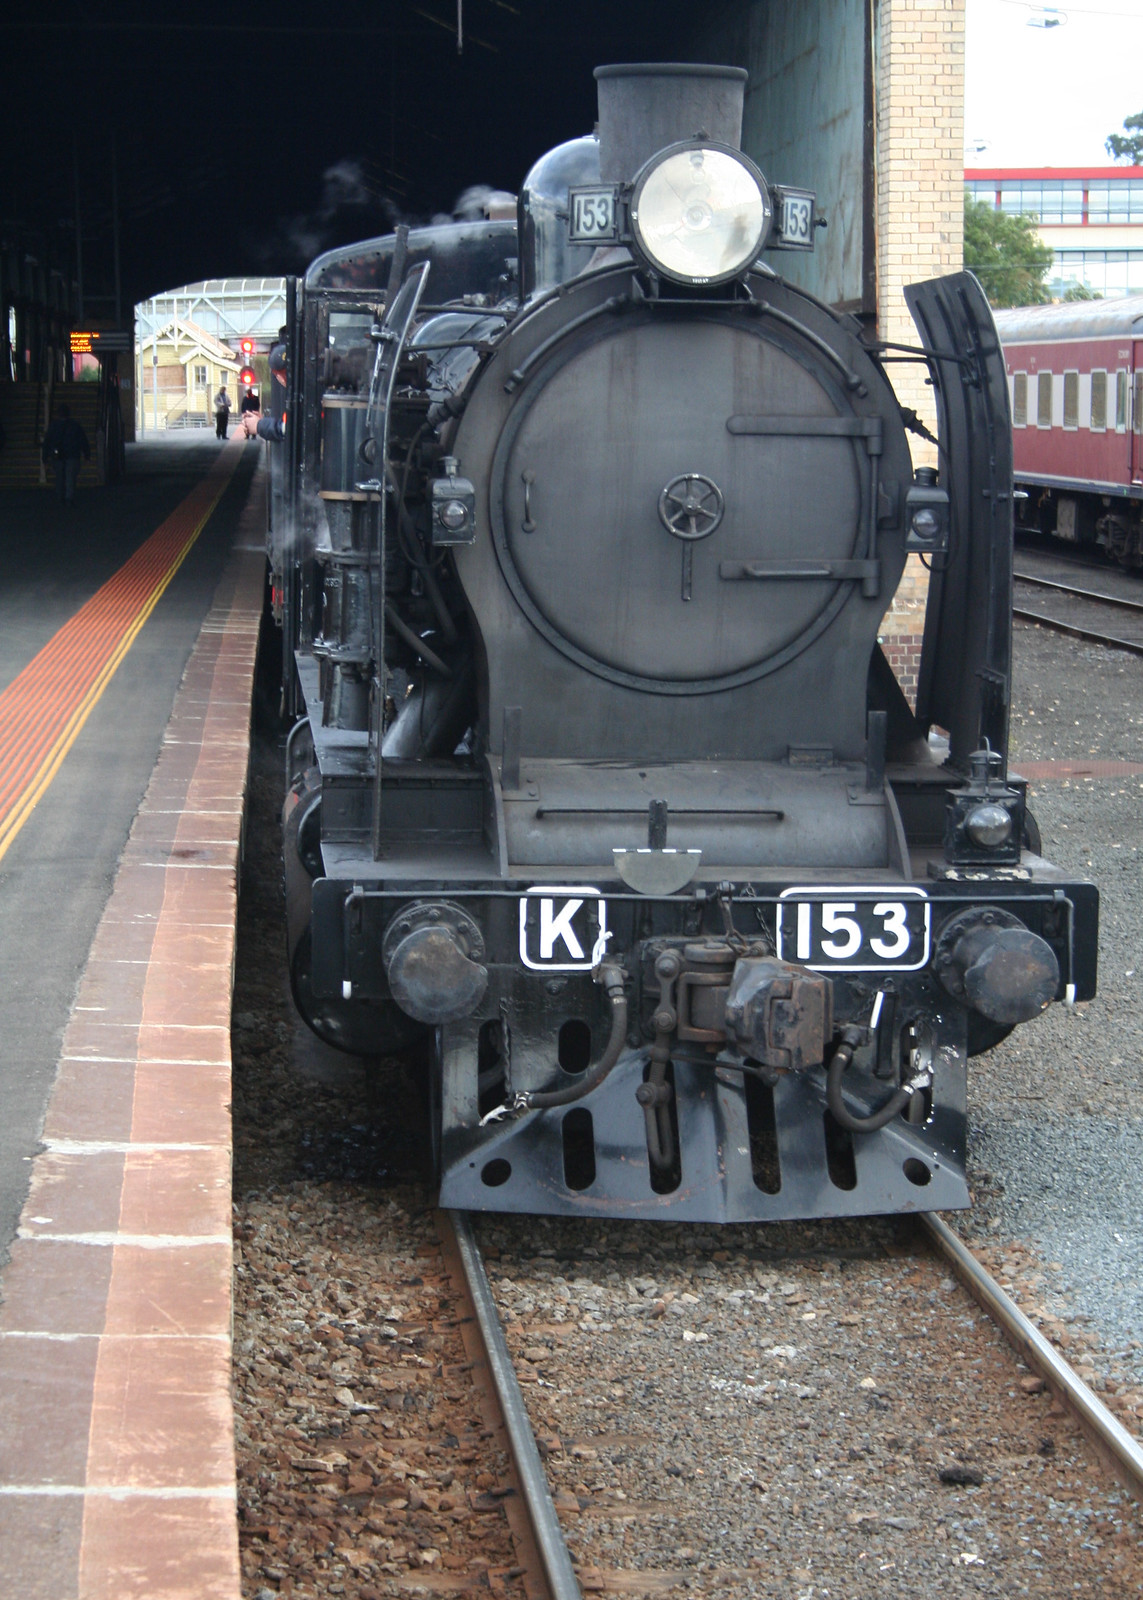 20090802_3873 K153 at Geelong Station by williewonker